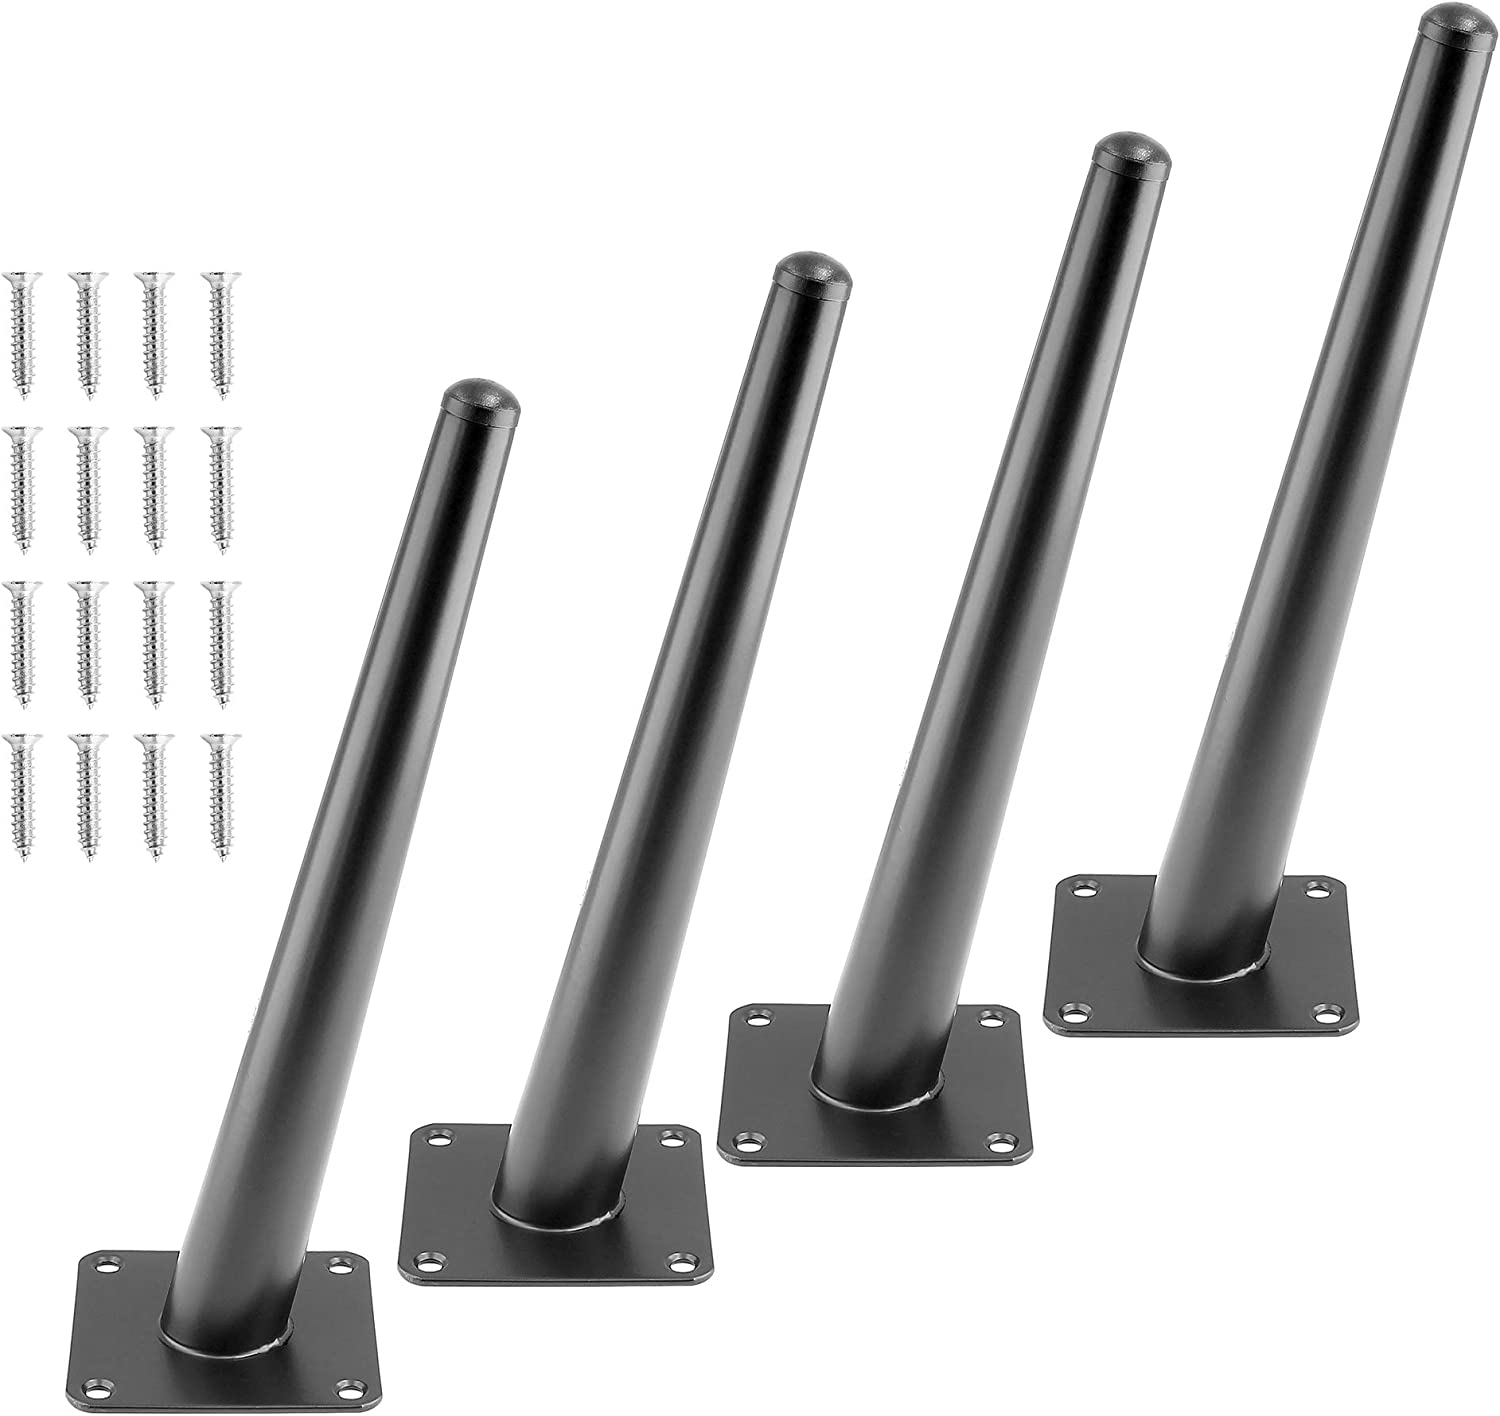 Seimneire 4pcs 10 Inch Furniture Legs, Oblique Conical Metal Legs Matte Black Mid-Century Style Furniture Feet for Sofa Cabinet Table Chair Cupboard Couch Ottoman Home DIY Projects